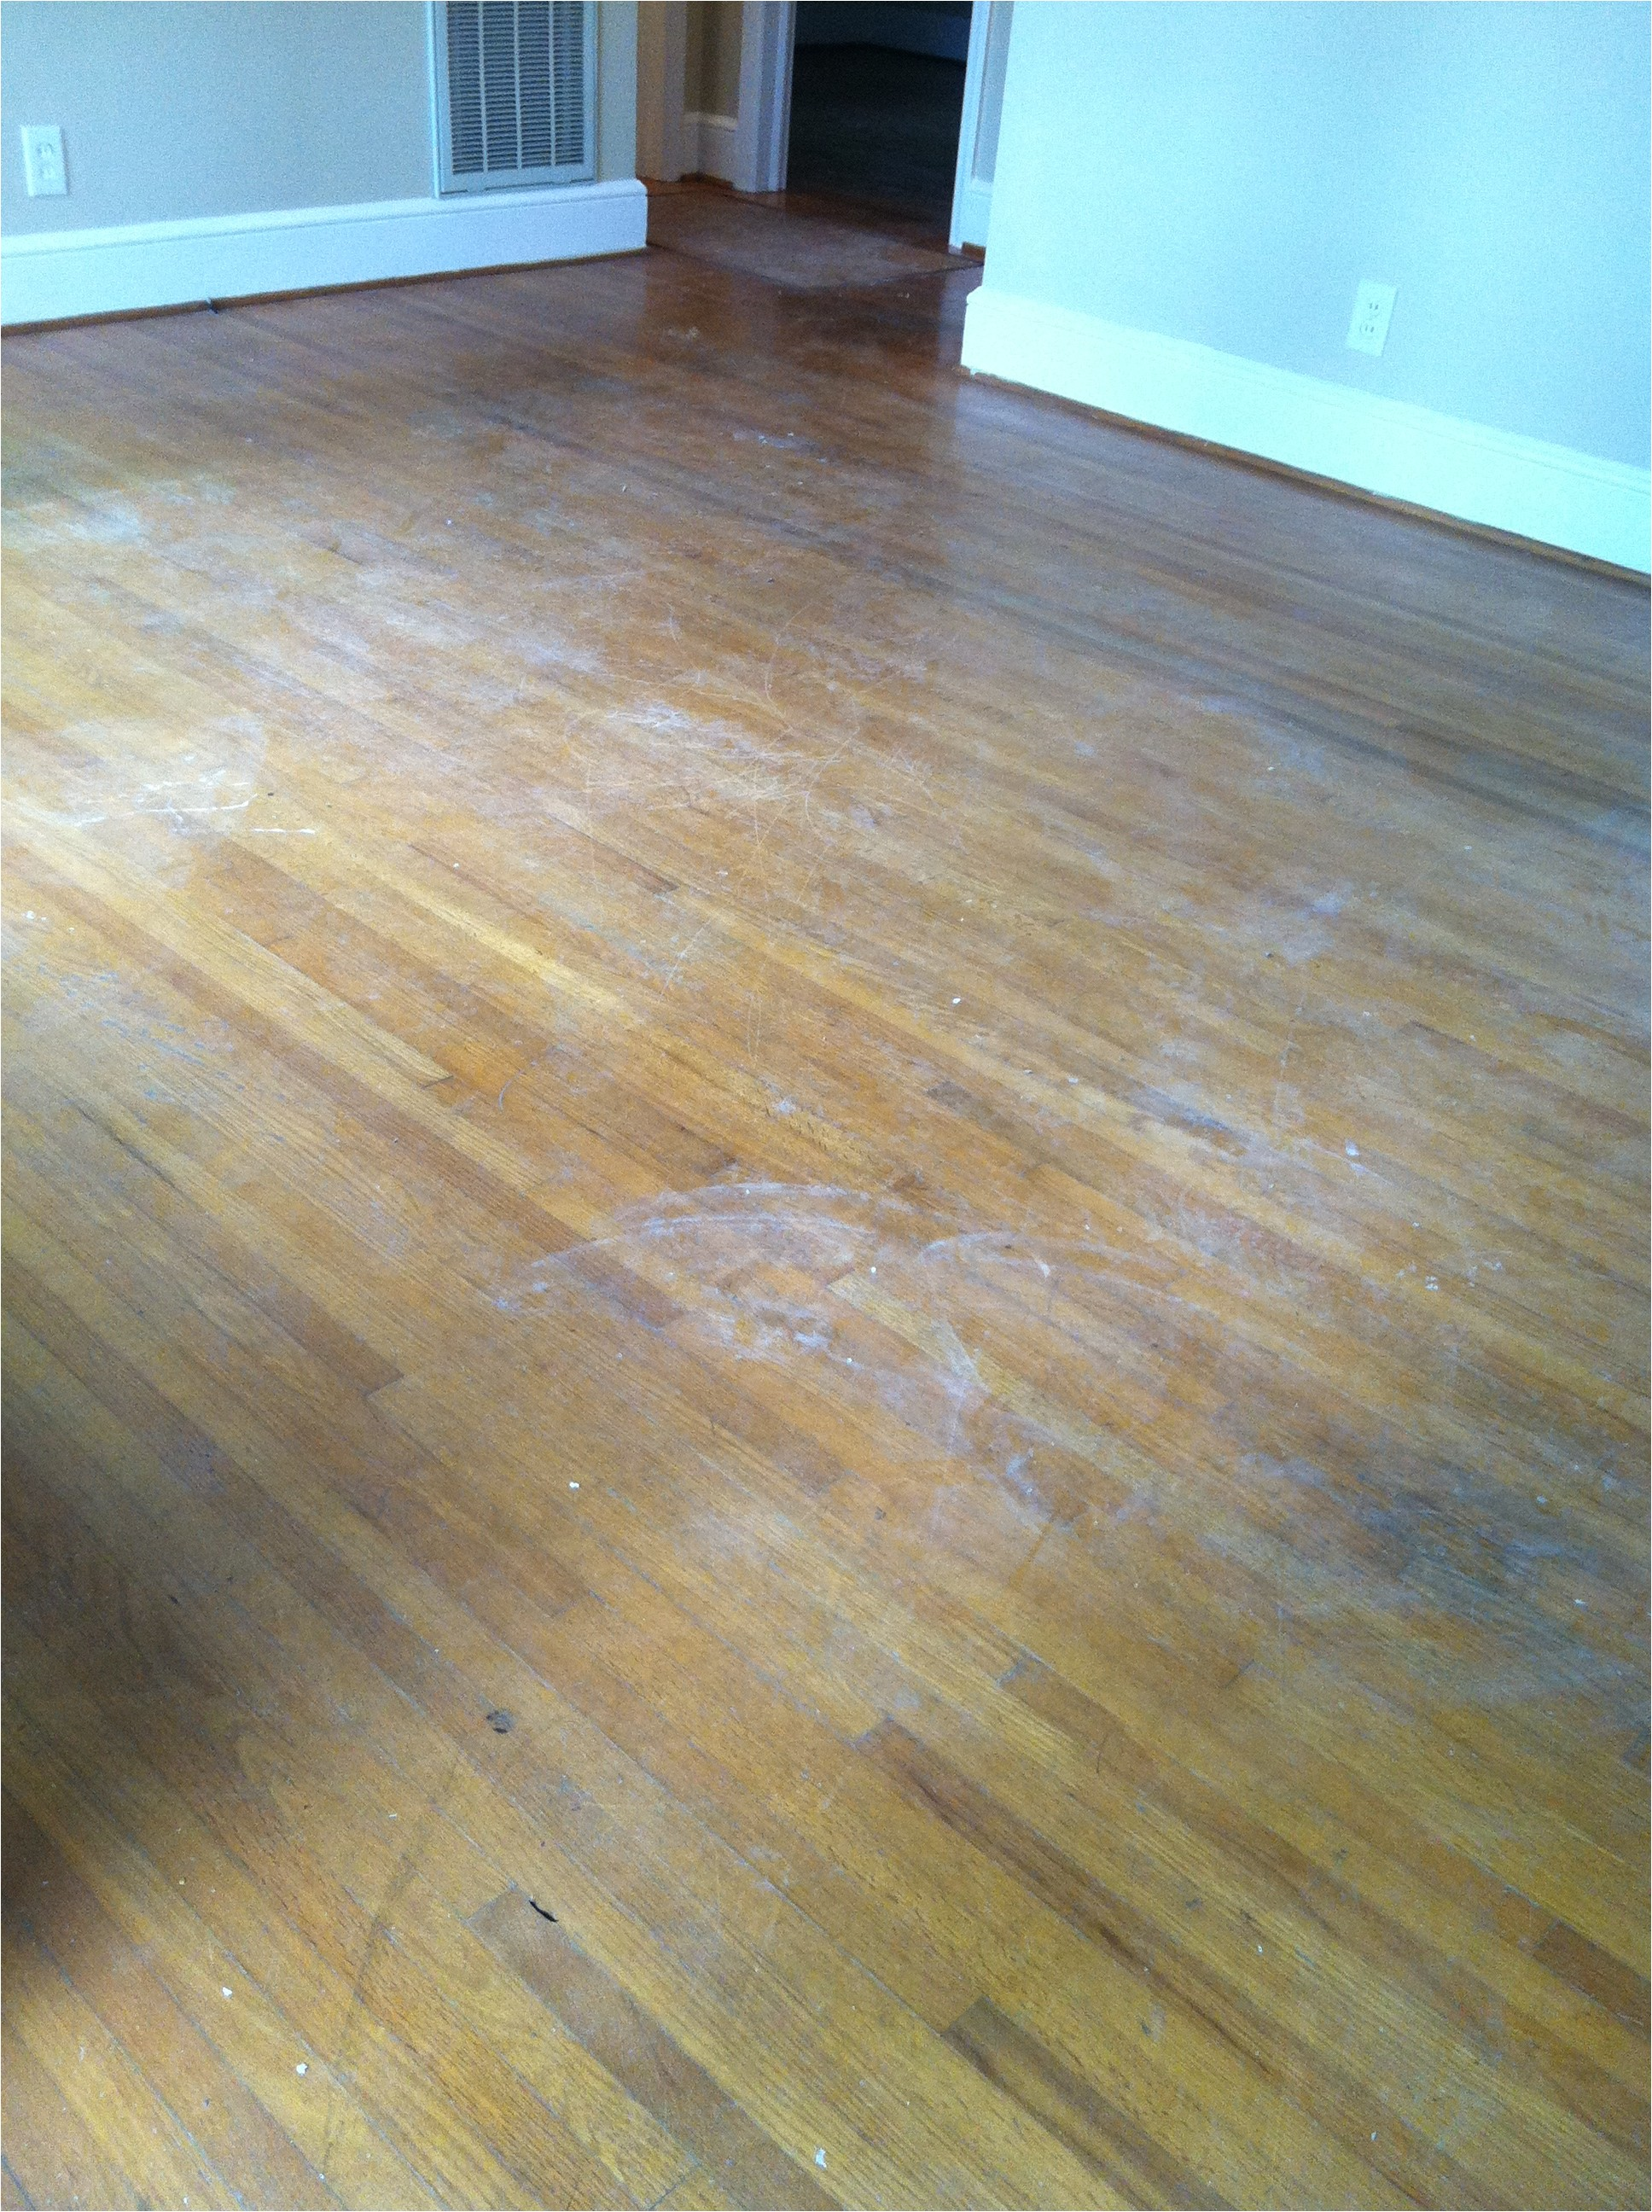 How To Clean A Hardwood Floor With Dogs Urine On It